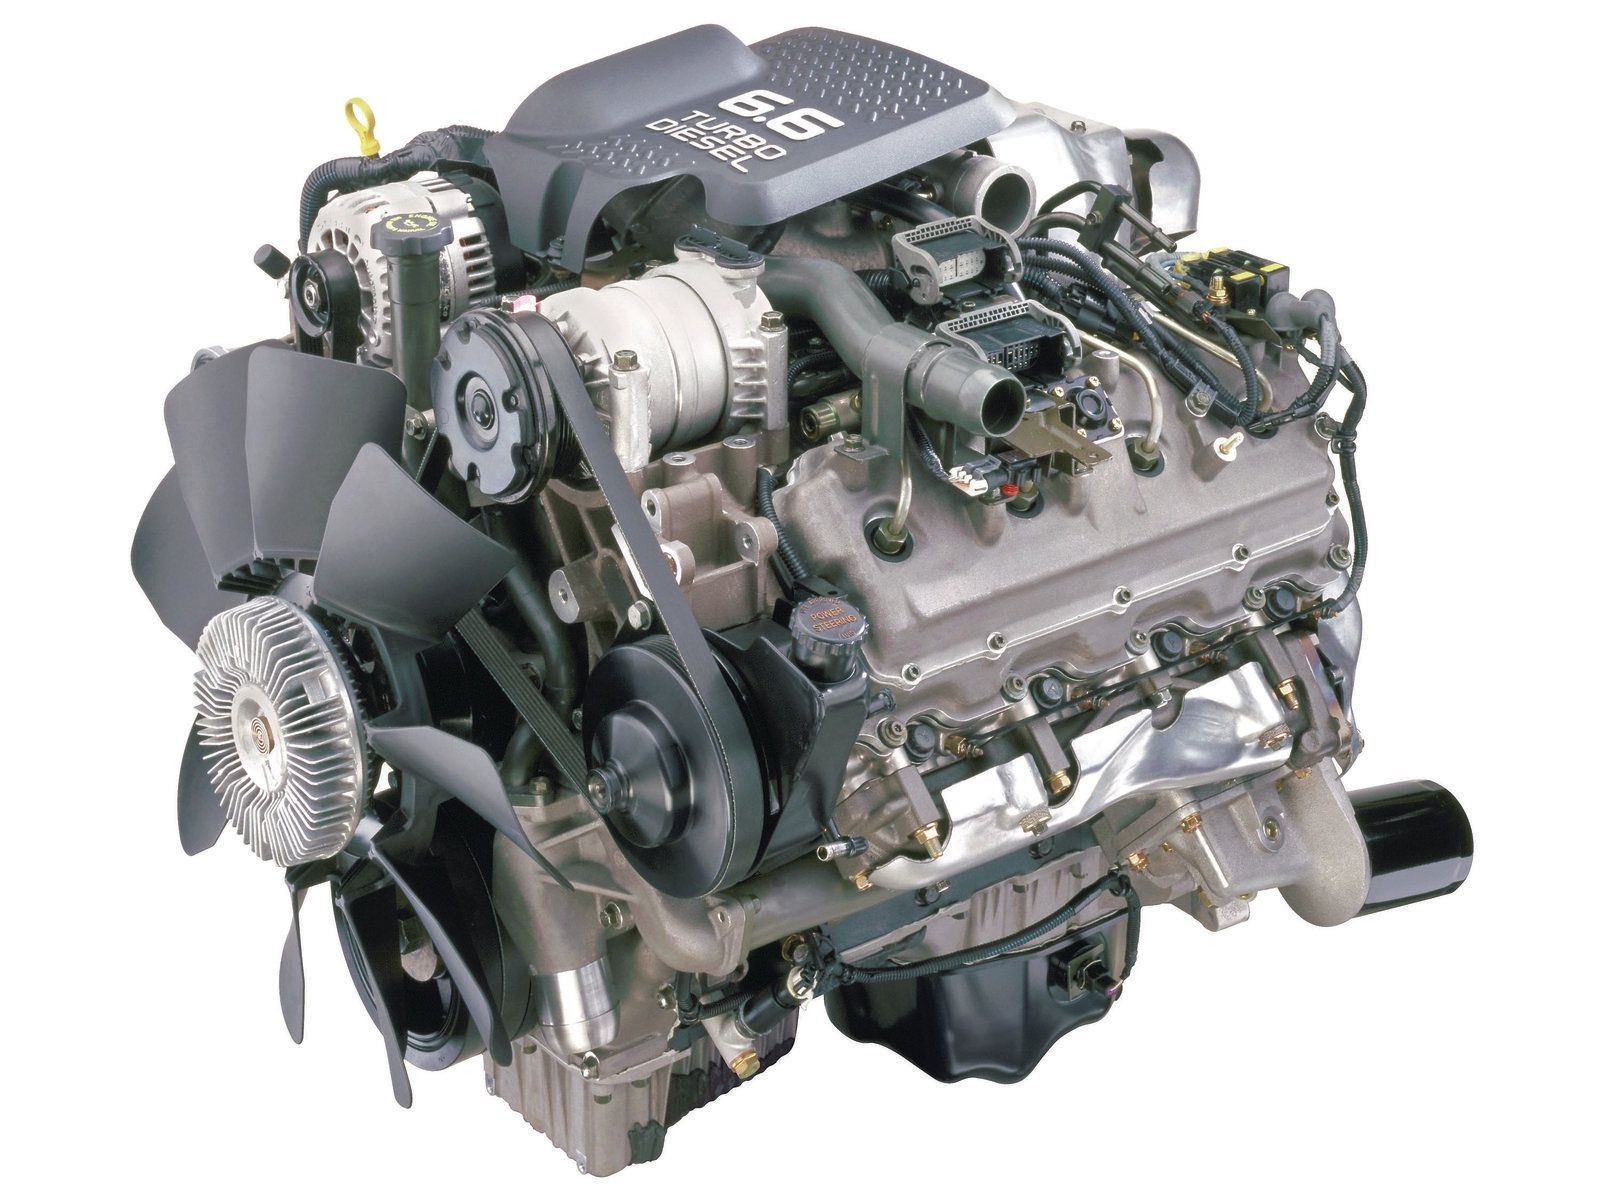 2004 Gmc Duramax Wiring Diagram Library C5500 Lb7 Engine History Of The Sel Rh Enginediagram Net Chevy